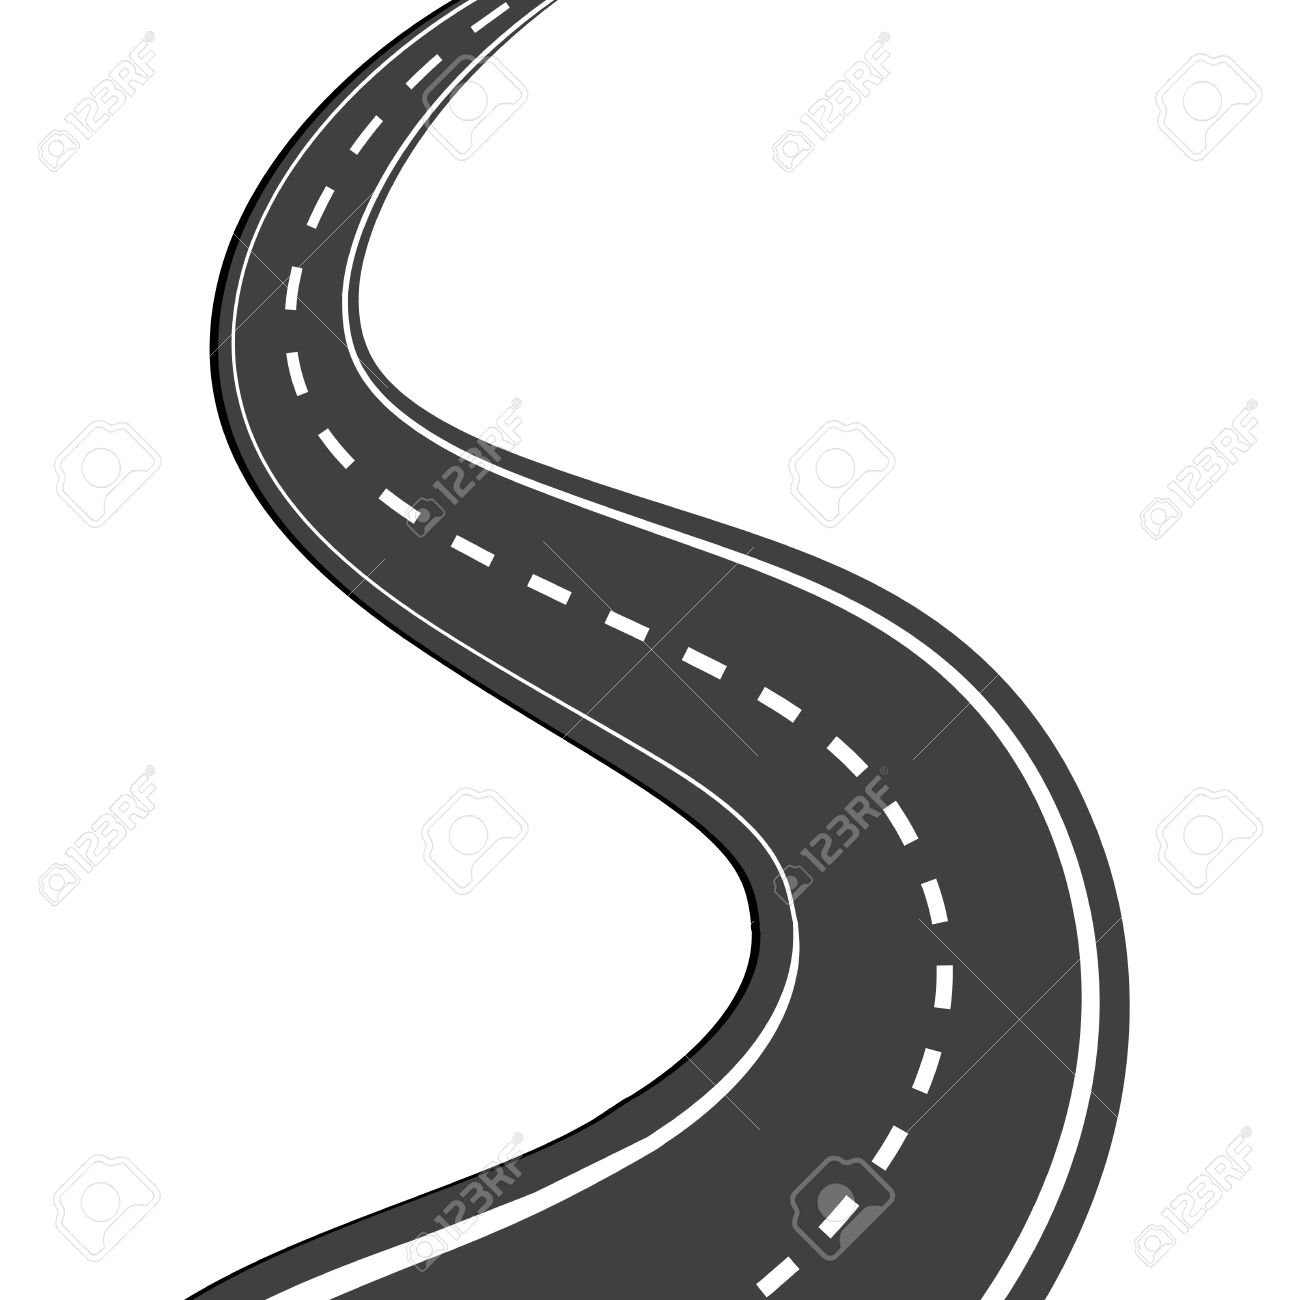 Free download clip art. Highway clipart long road